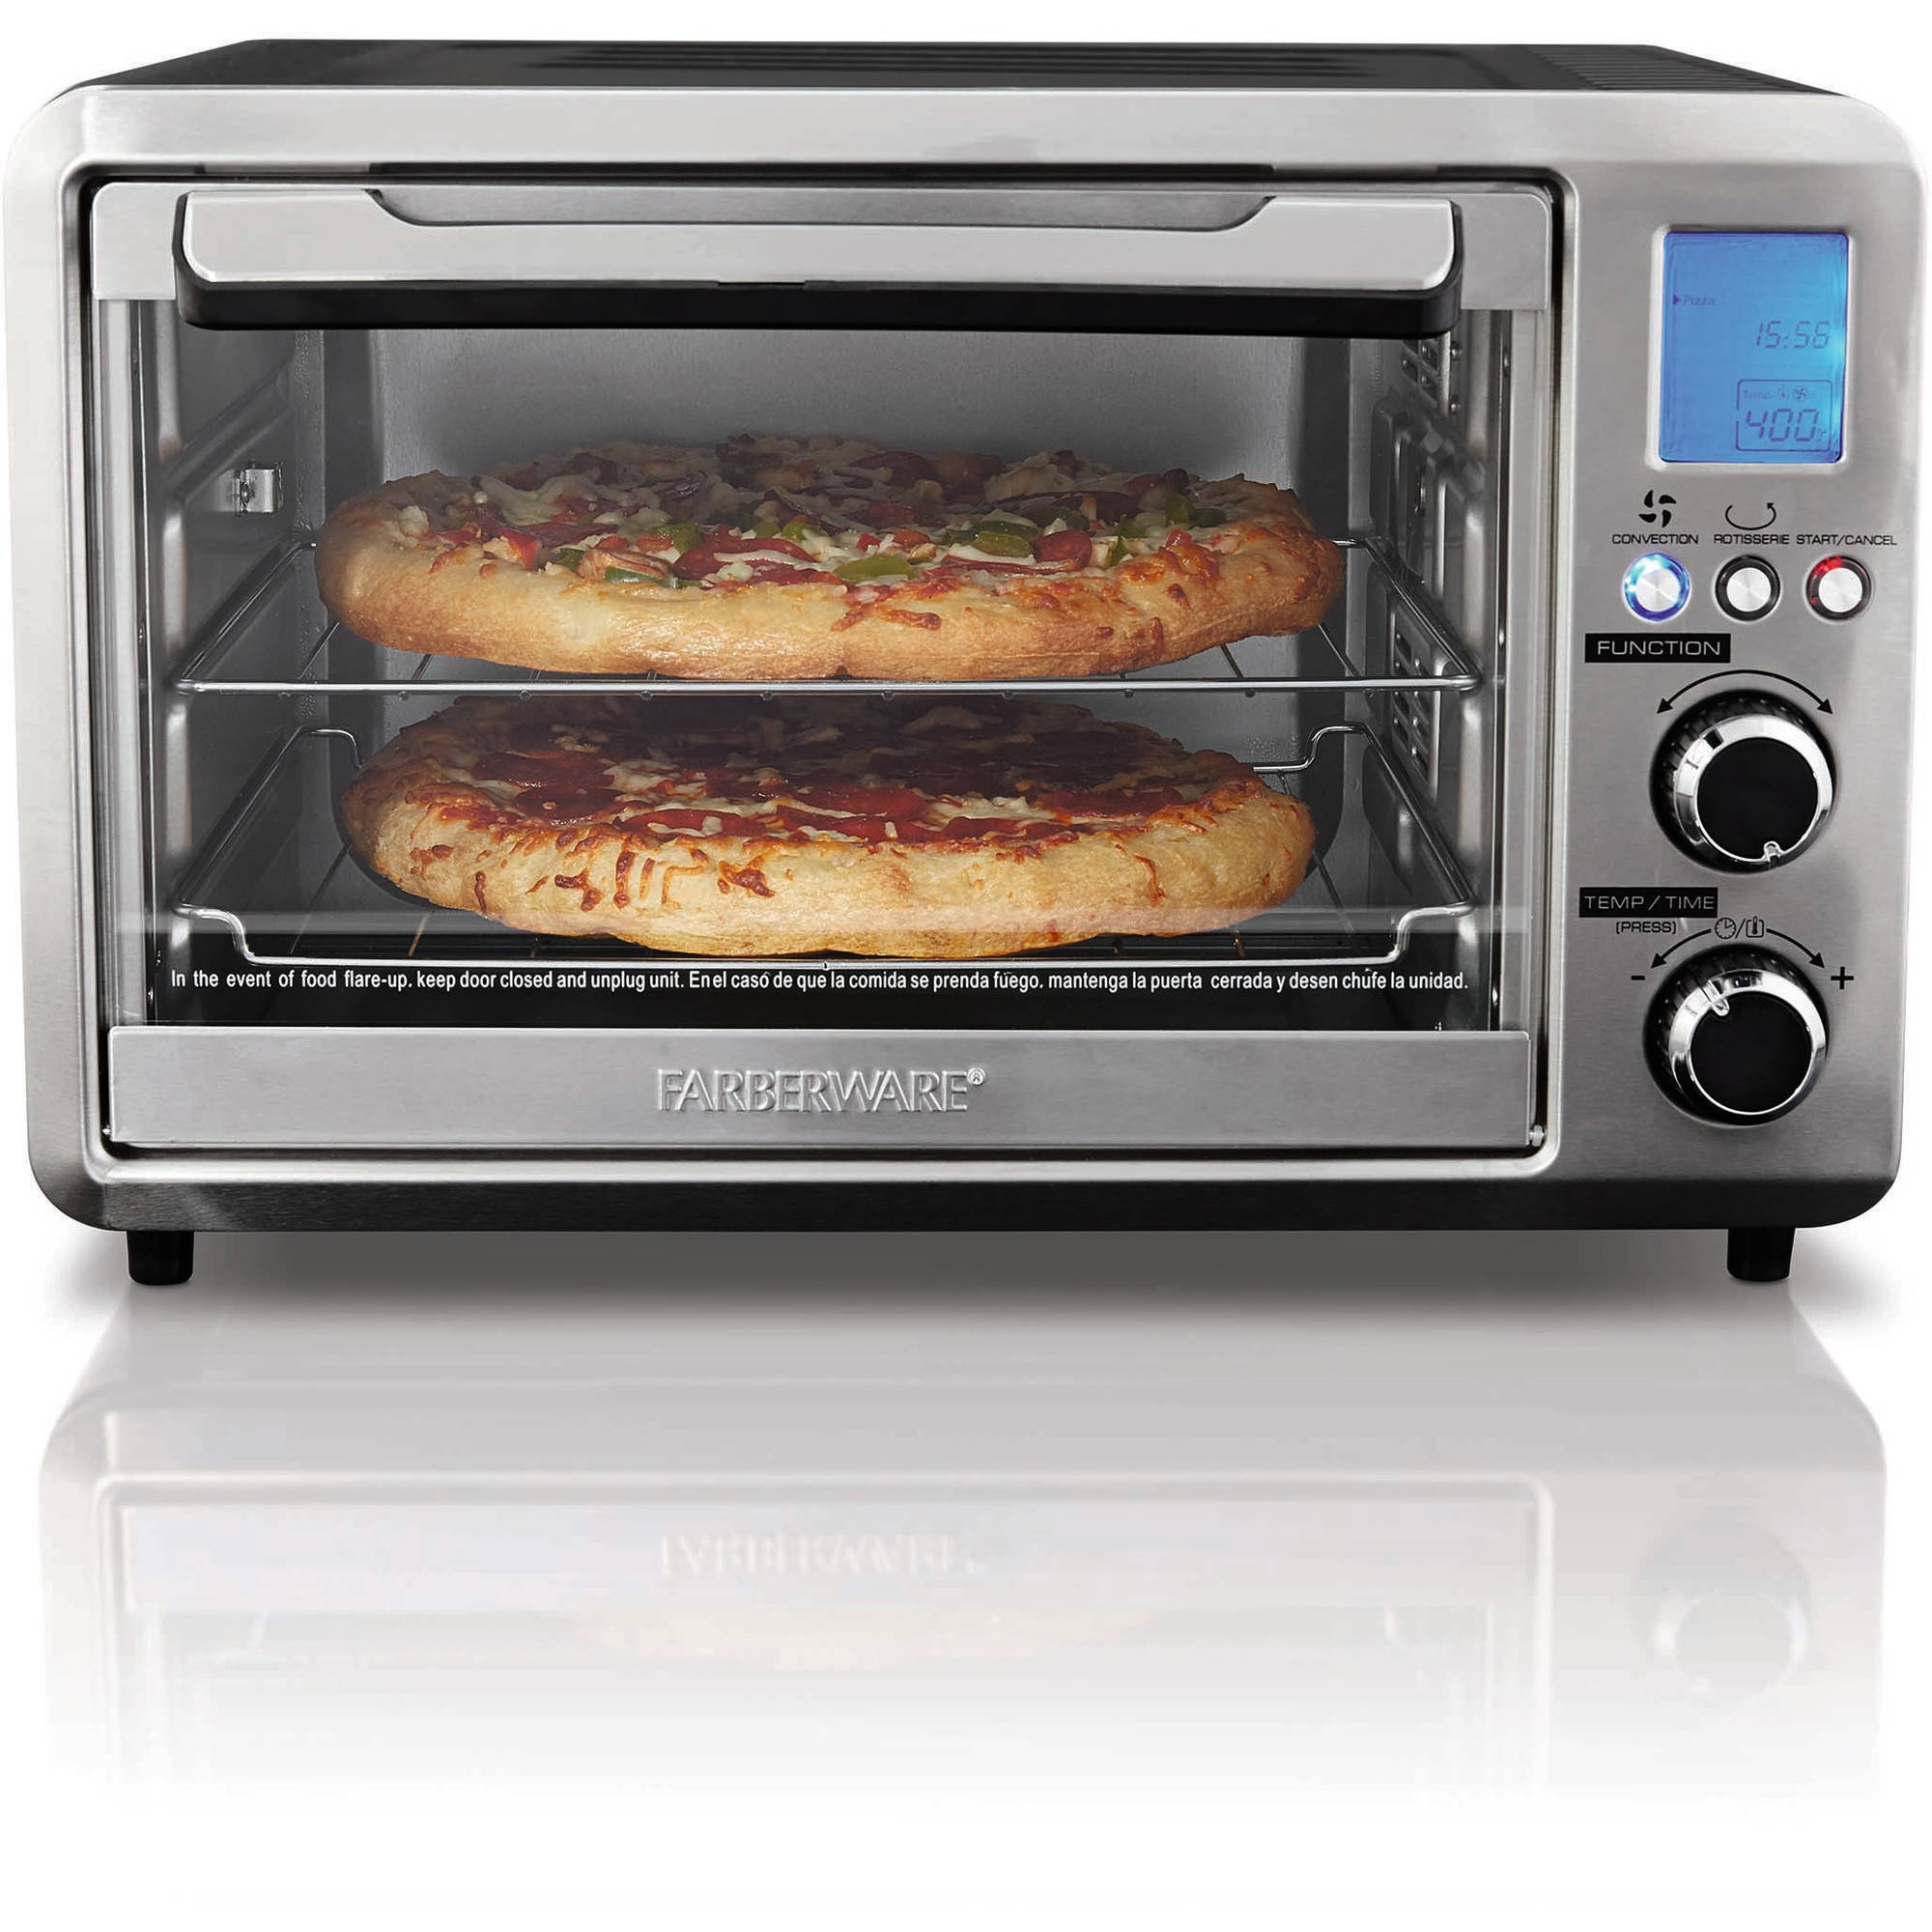 Farberware Digital Toaster Oven